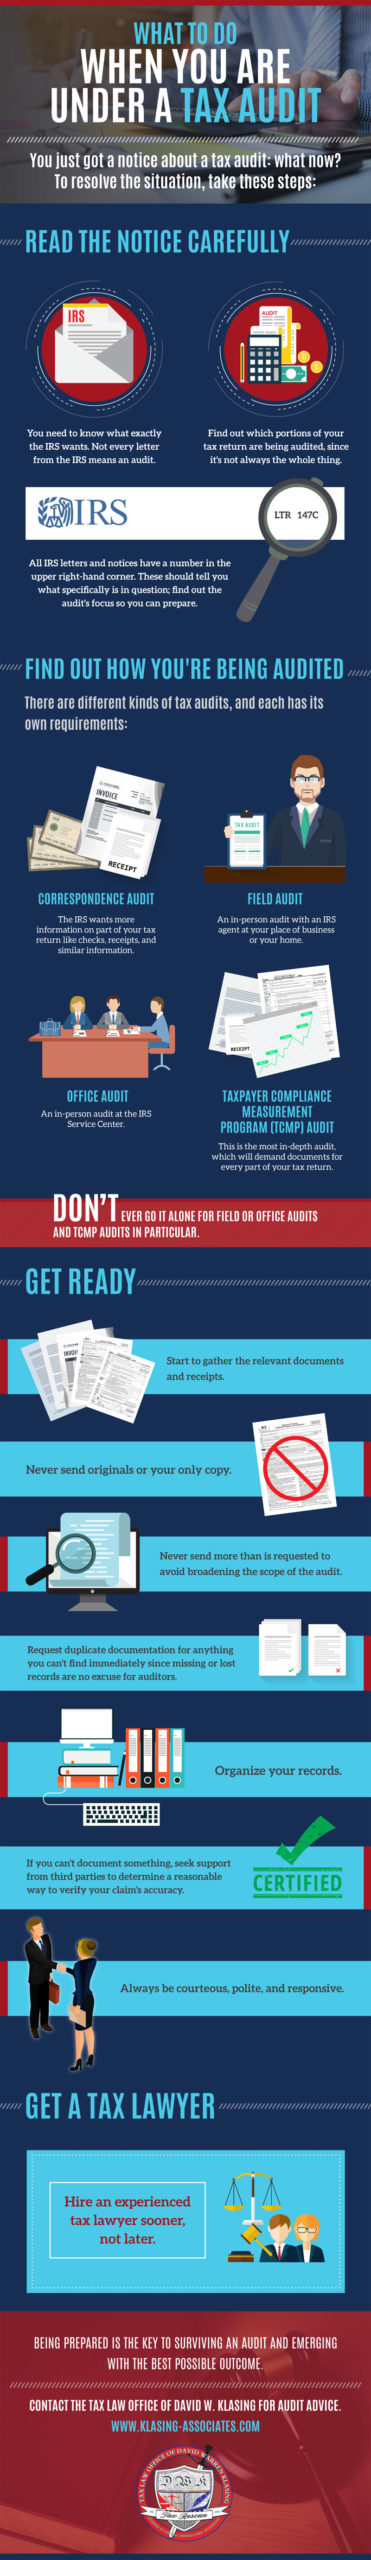 what to do when you are under a tax audit infographic